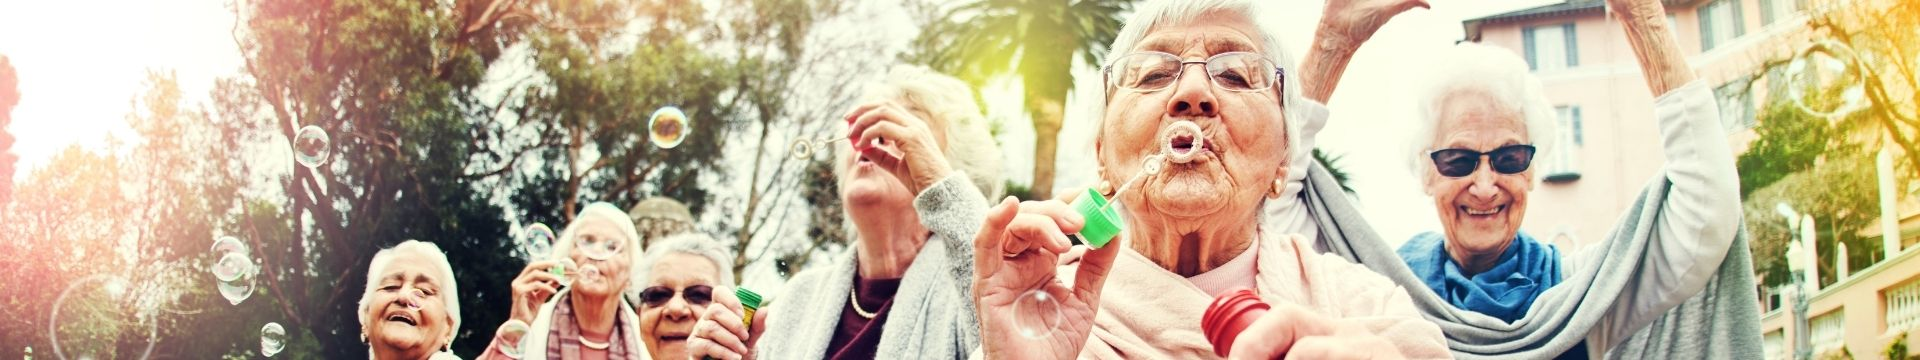 Old ladies blowing bubbles